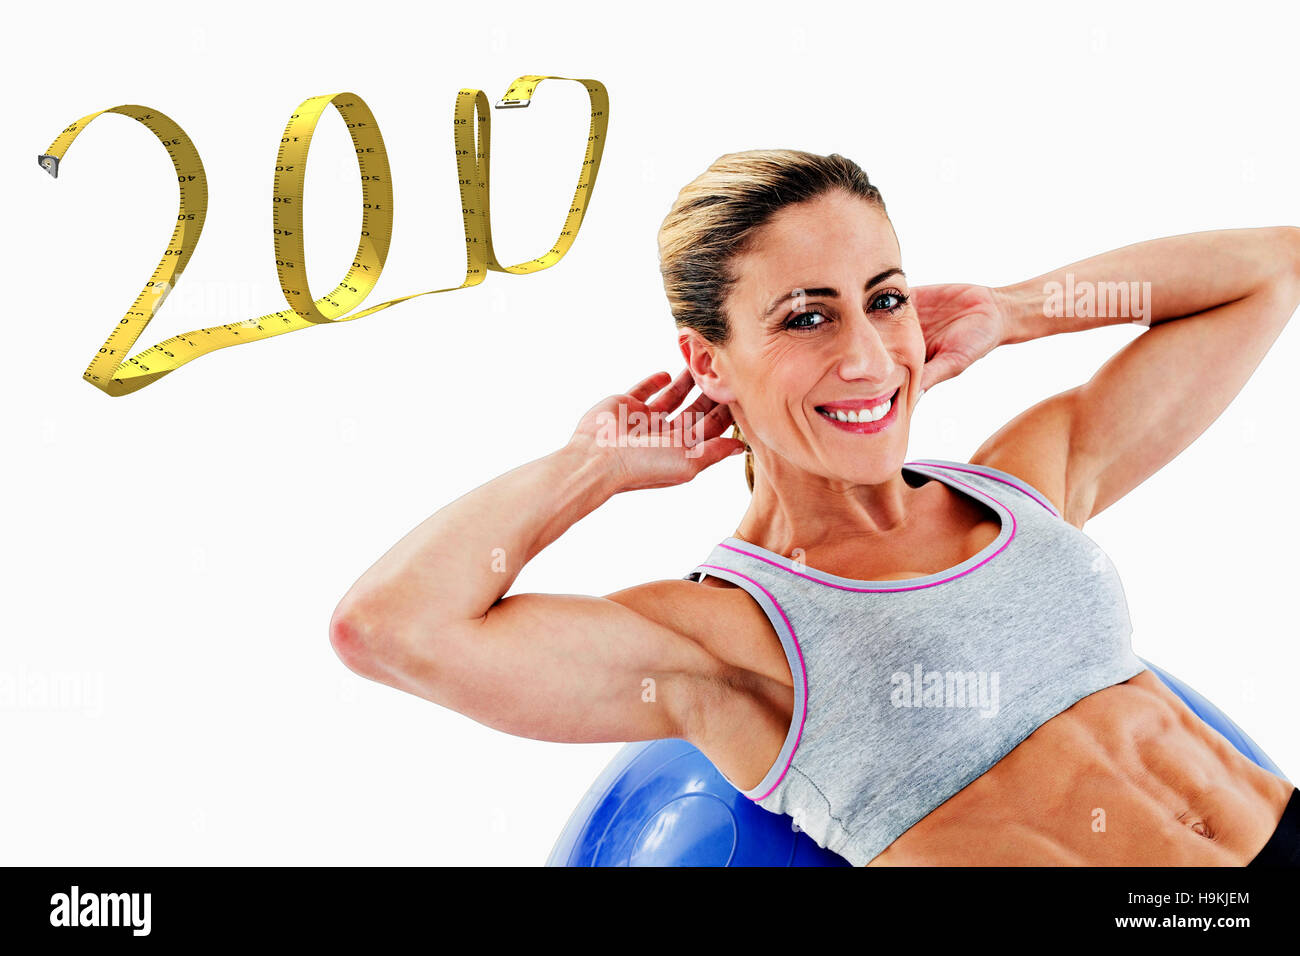 3d composite image of fit woman doing sit ups on blue exercise ball stock photo royalty free. Black Bedroom Furniture Sets. Home Design Ideas